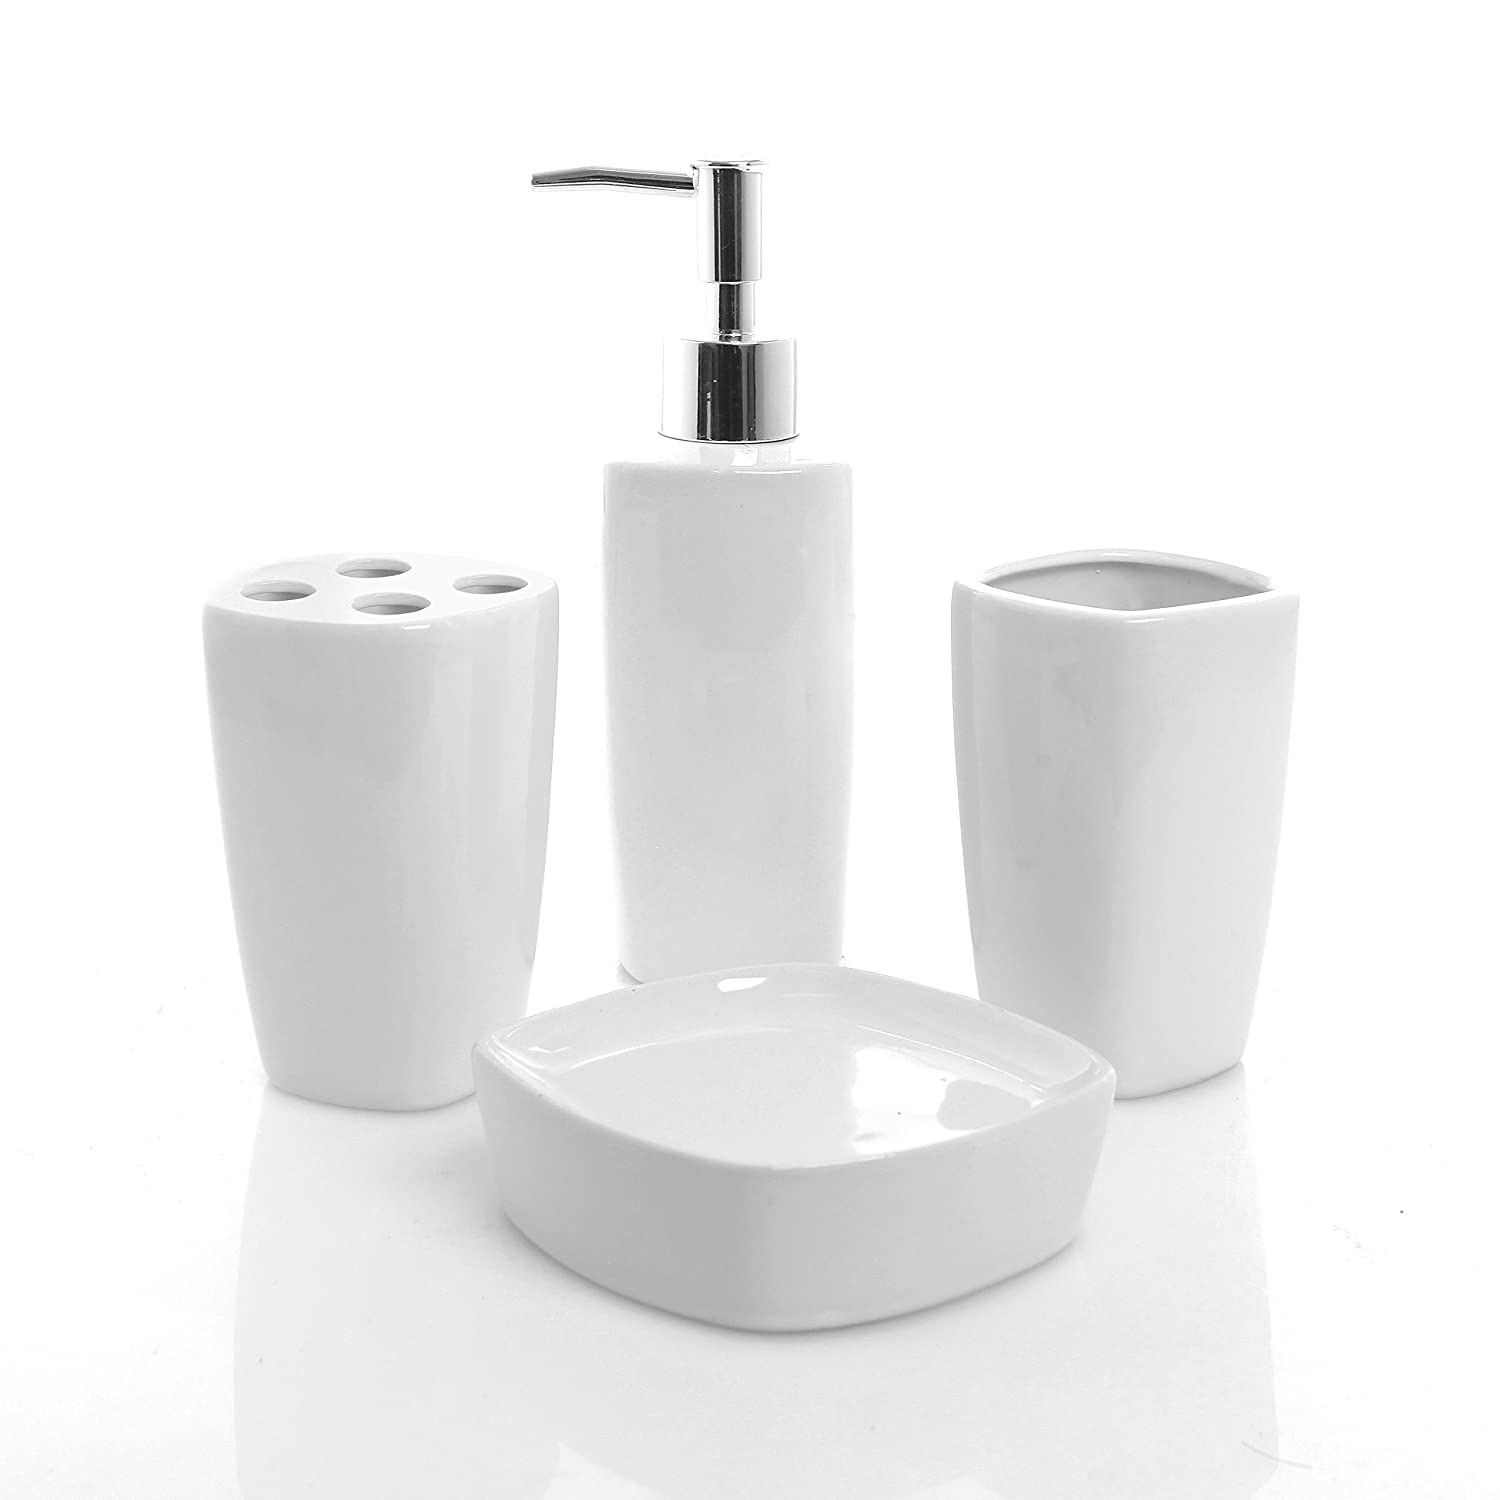 . MyGift 4 Piece White Ceramic Bathroom Set   Pump Soap Dispenser  Toothbrush  Holder  Tumbler Cup   Soap Dish Tray